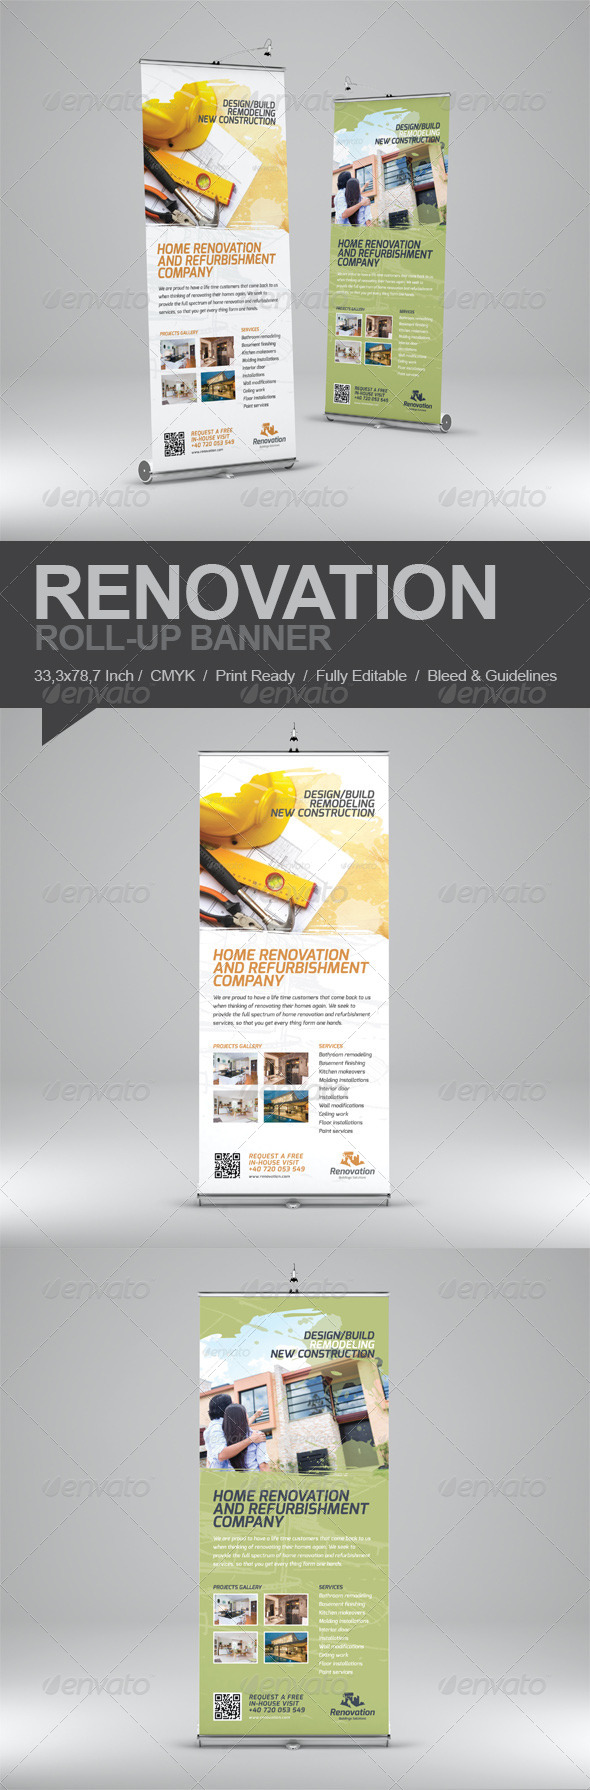 GraphicRiver Renovation Roll-Up Banner 5567566